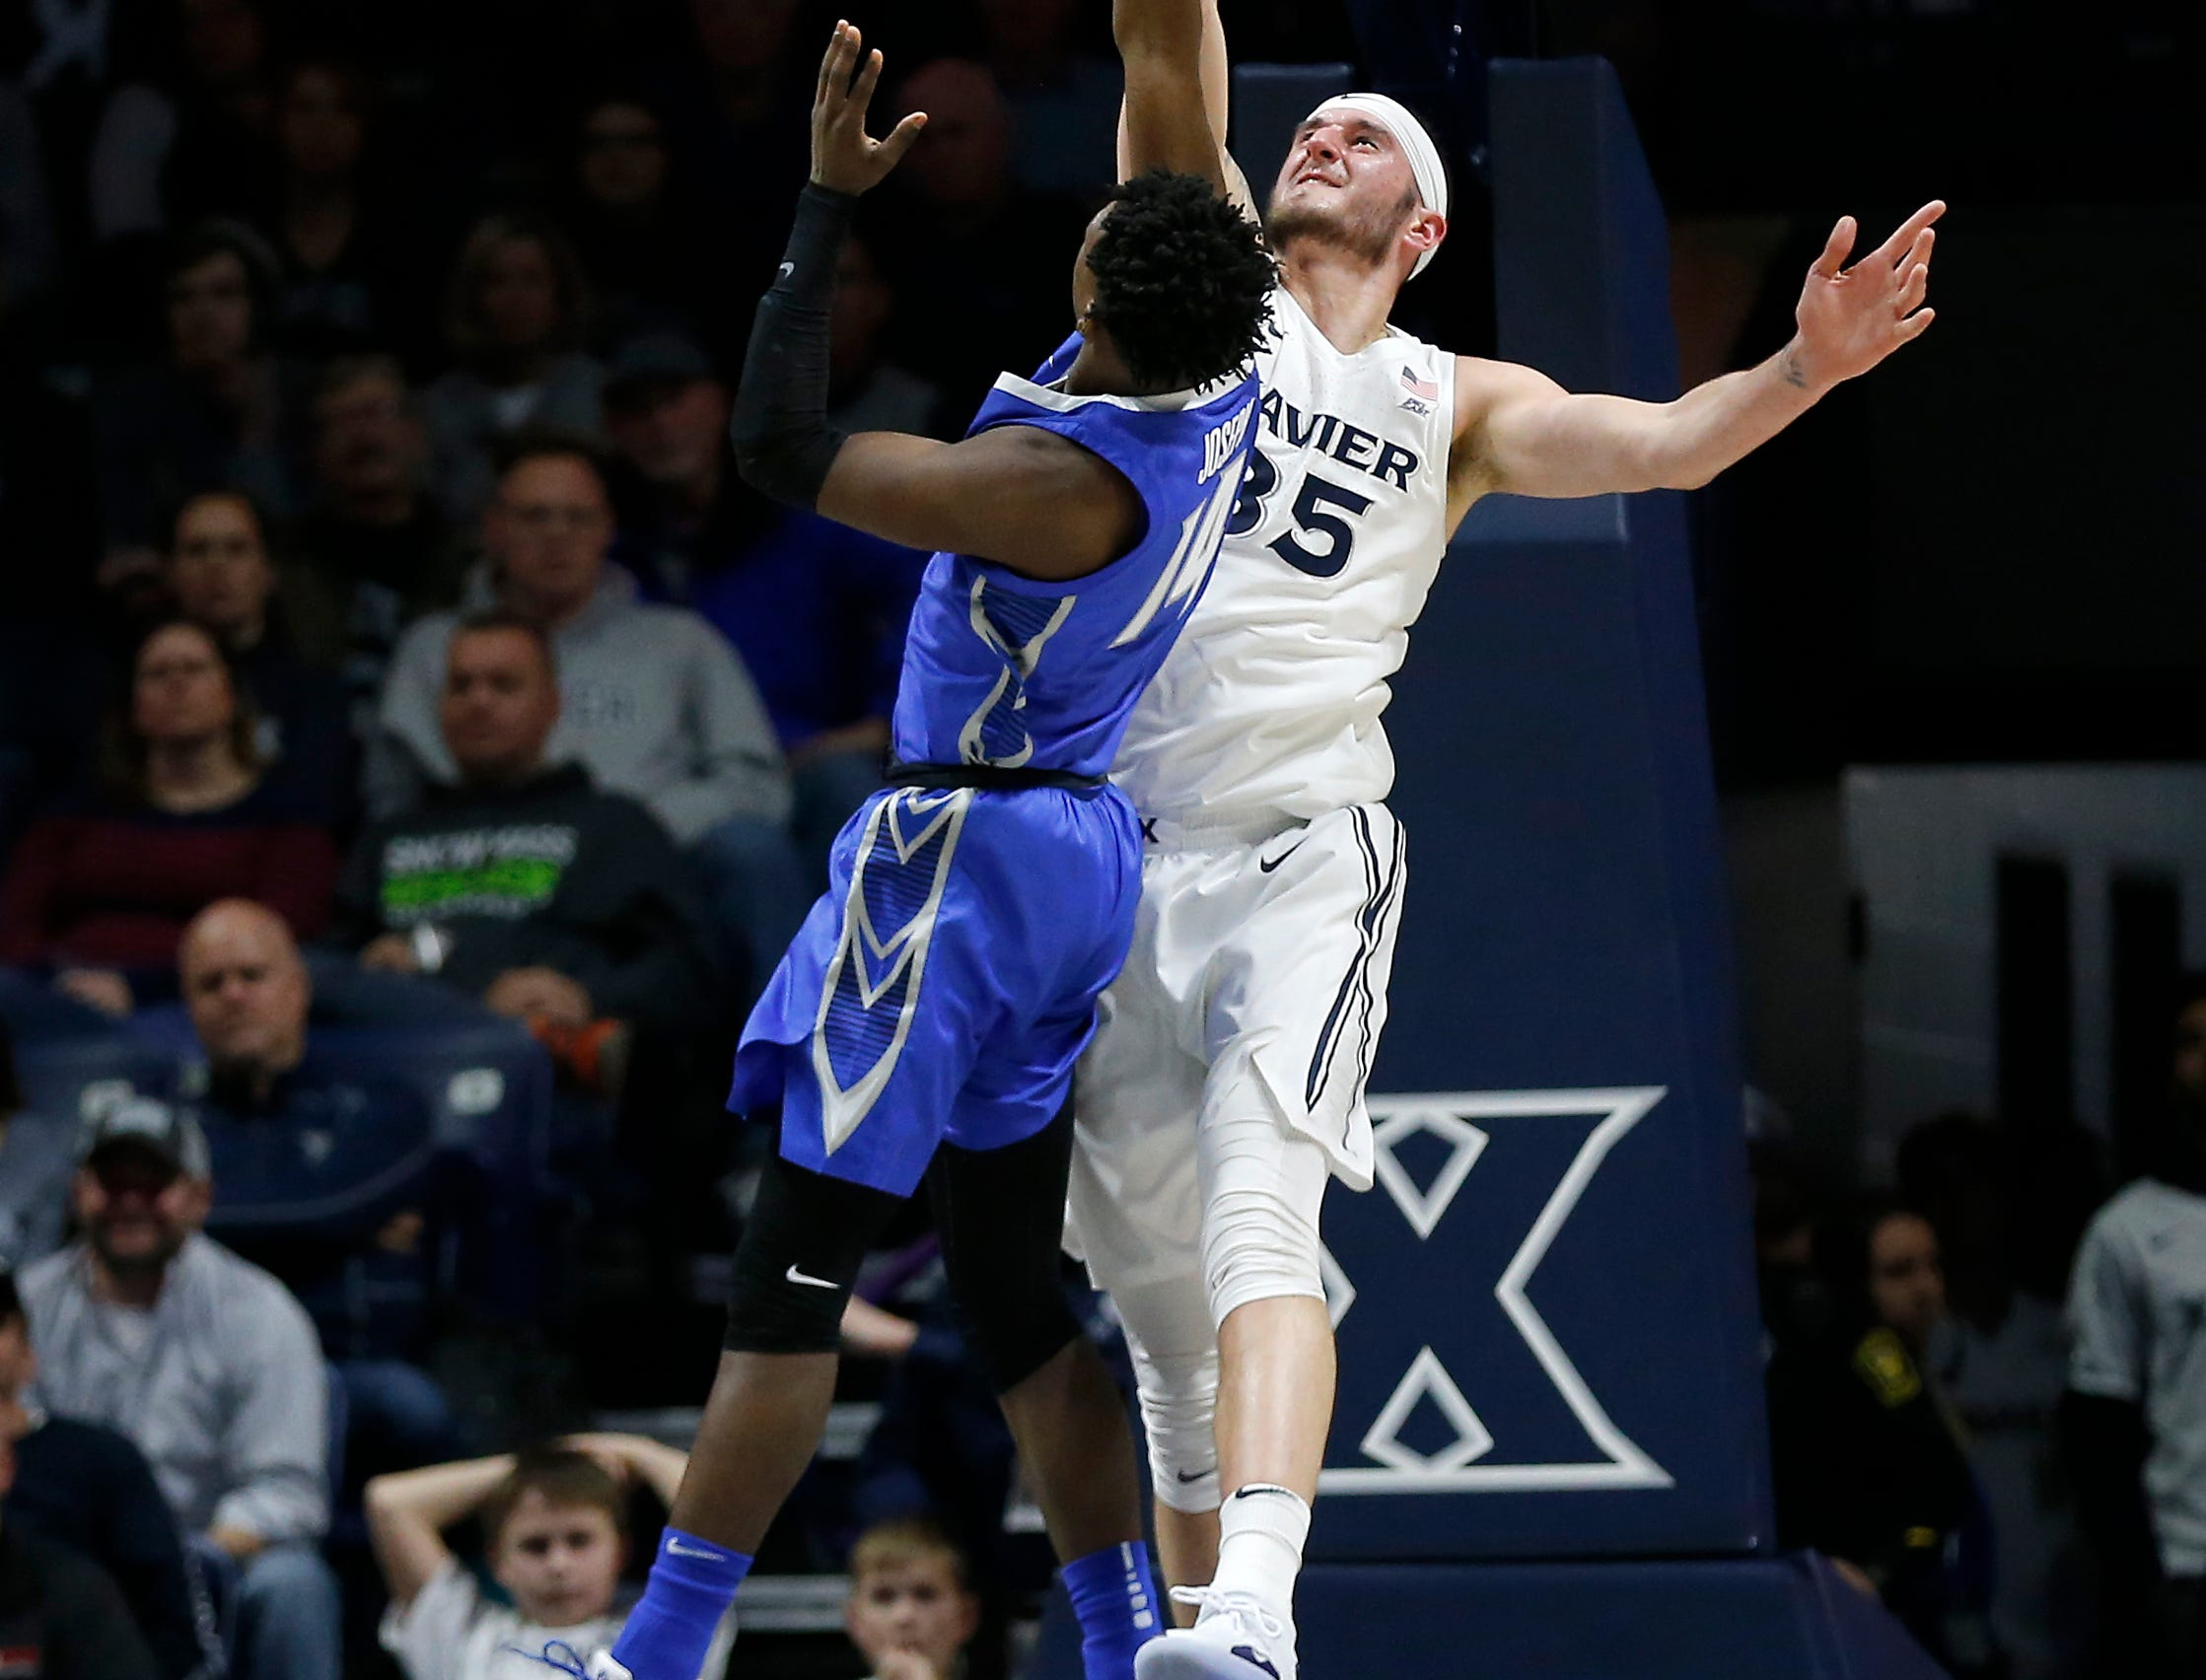 Xavier Musketeers forward Zach Hankins (35) rejects a shot by Creighton Bluejays guard Kaleb Alejandro Joseph (14) in the first half of the NCAA Big East Conference basketball game between the Xavier Musketeers and the Creighton Bluejays at Xavier's Cintas Center in Cincinnati on Wednesday, Feb. 13, 2019. Xavier led 36-30 at halftime.